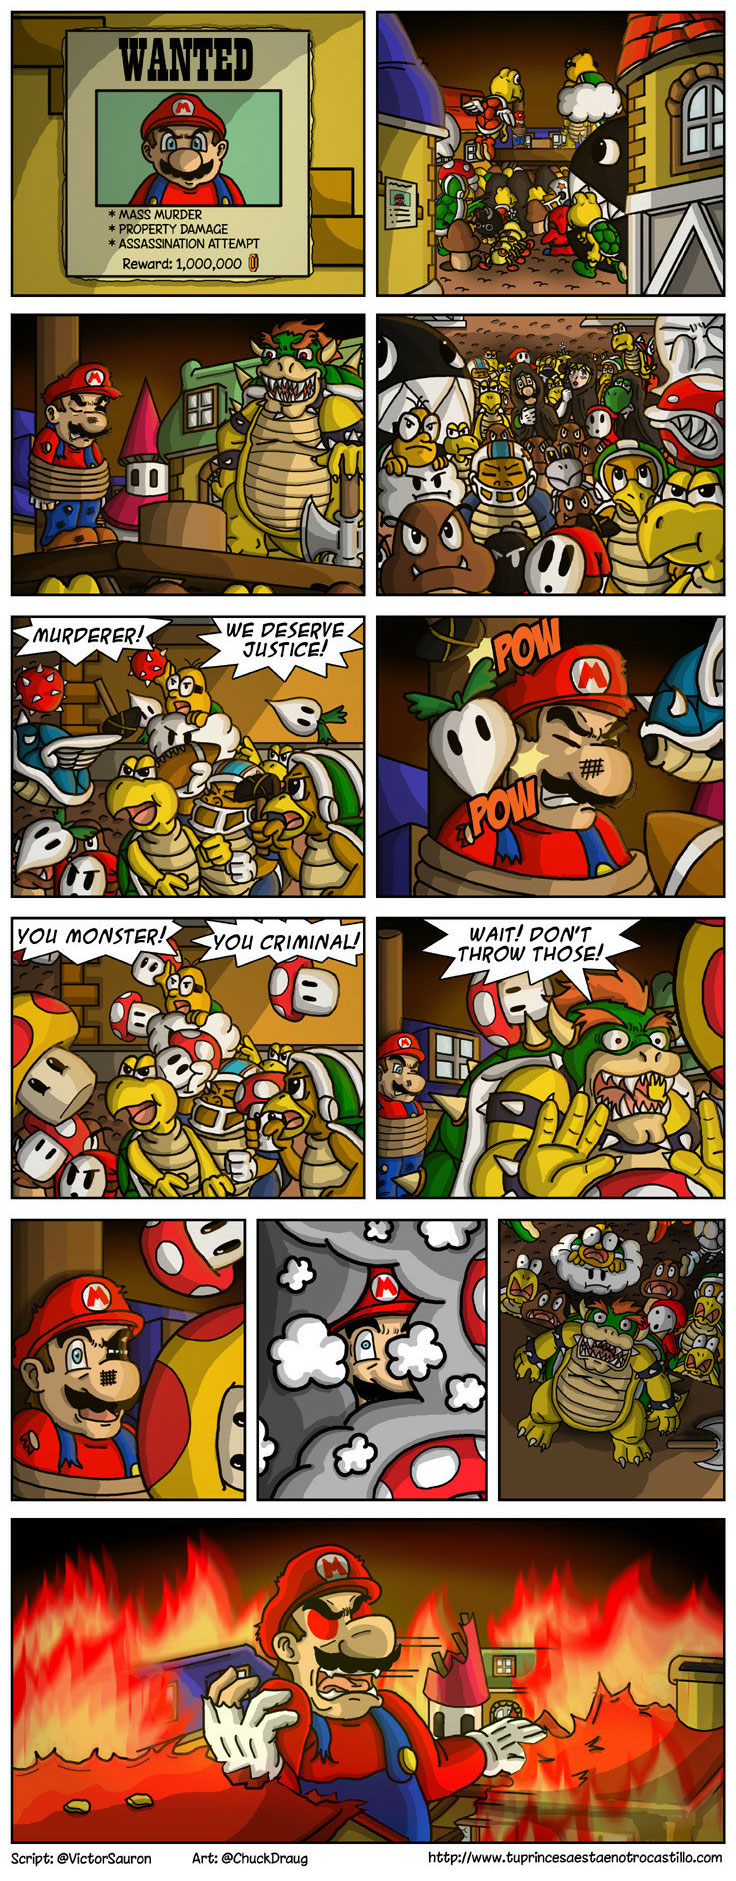 Crime and Consequences - Super Mario Bros.